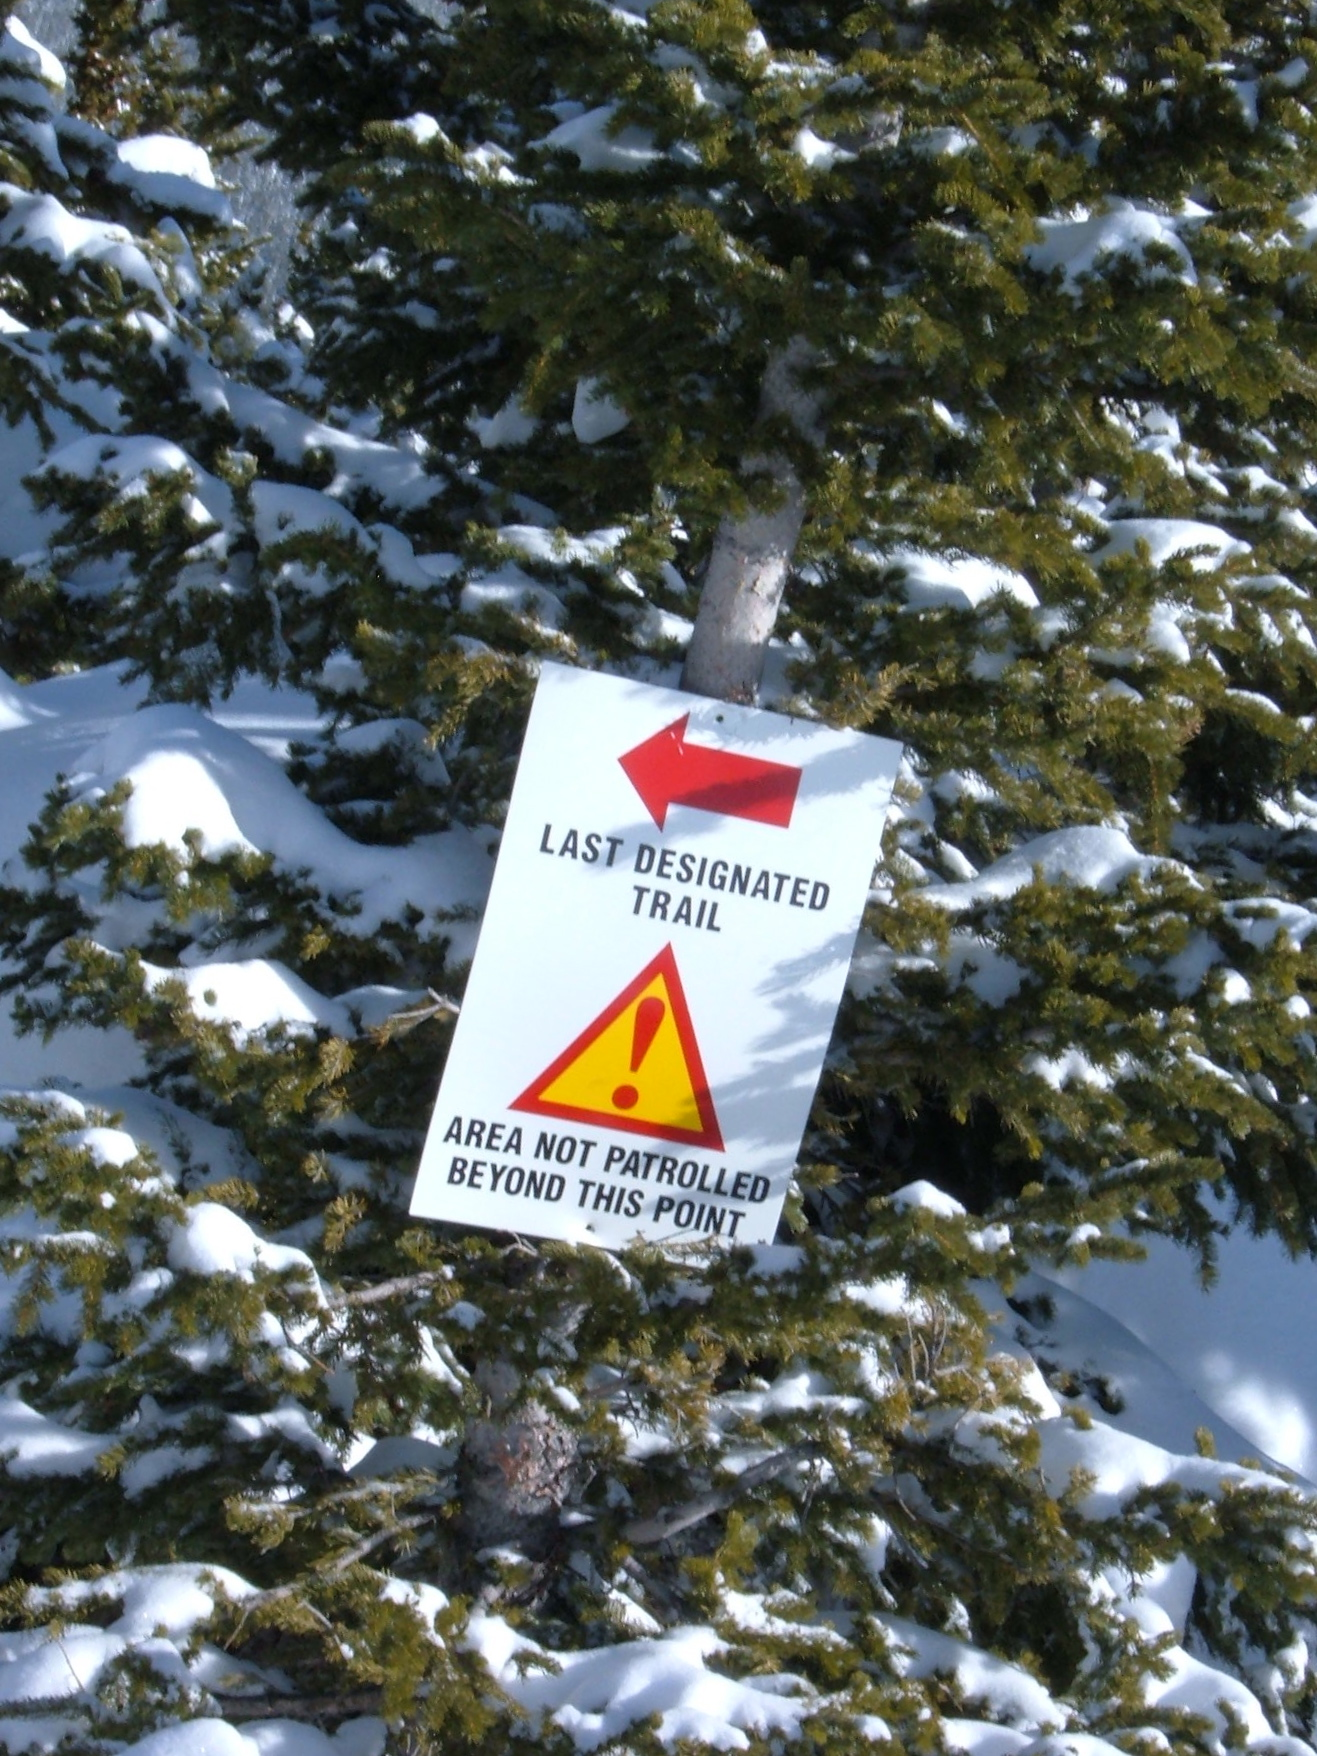 Expert Skiers and Boarders Beware